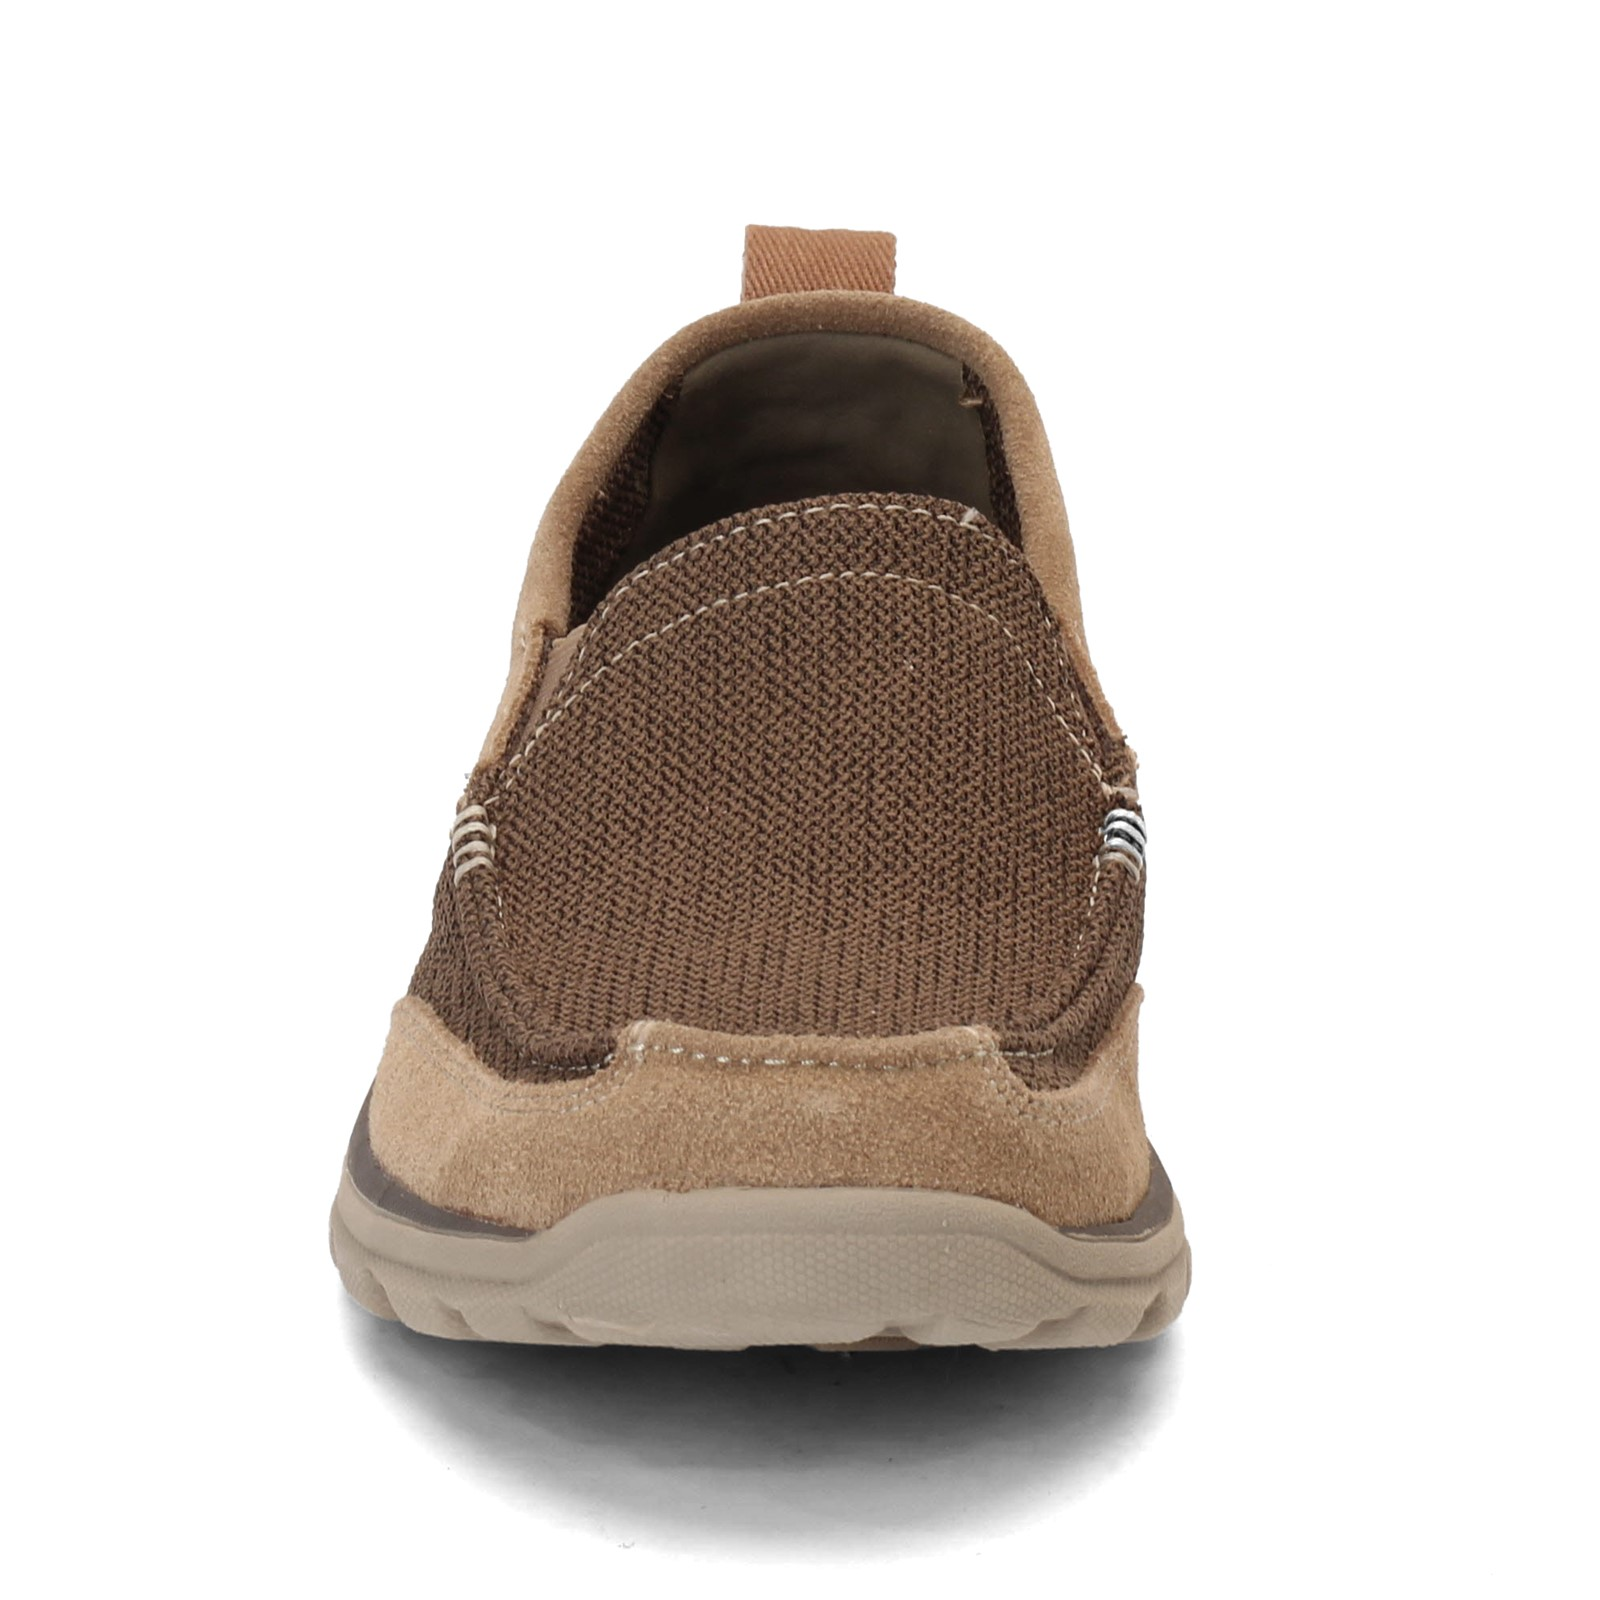 Men's Skechers, Relaxed Fit: Superior